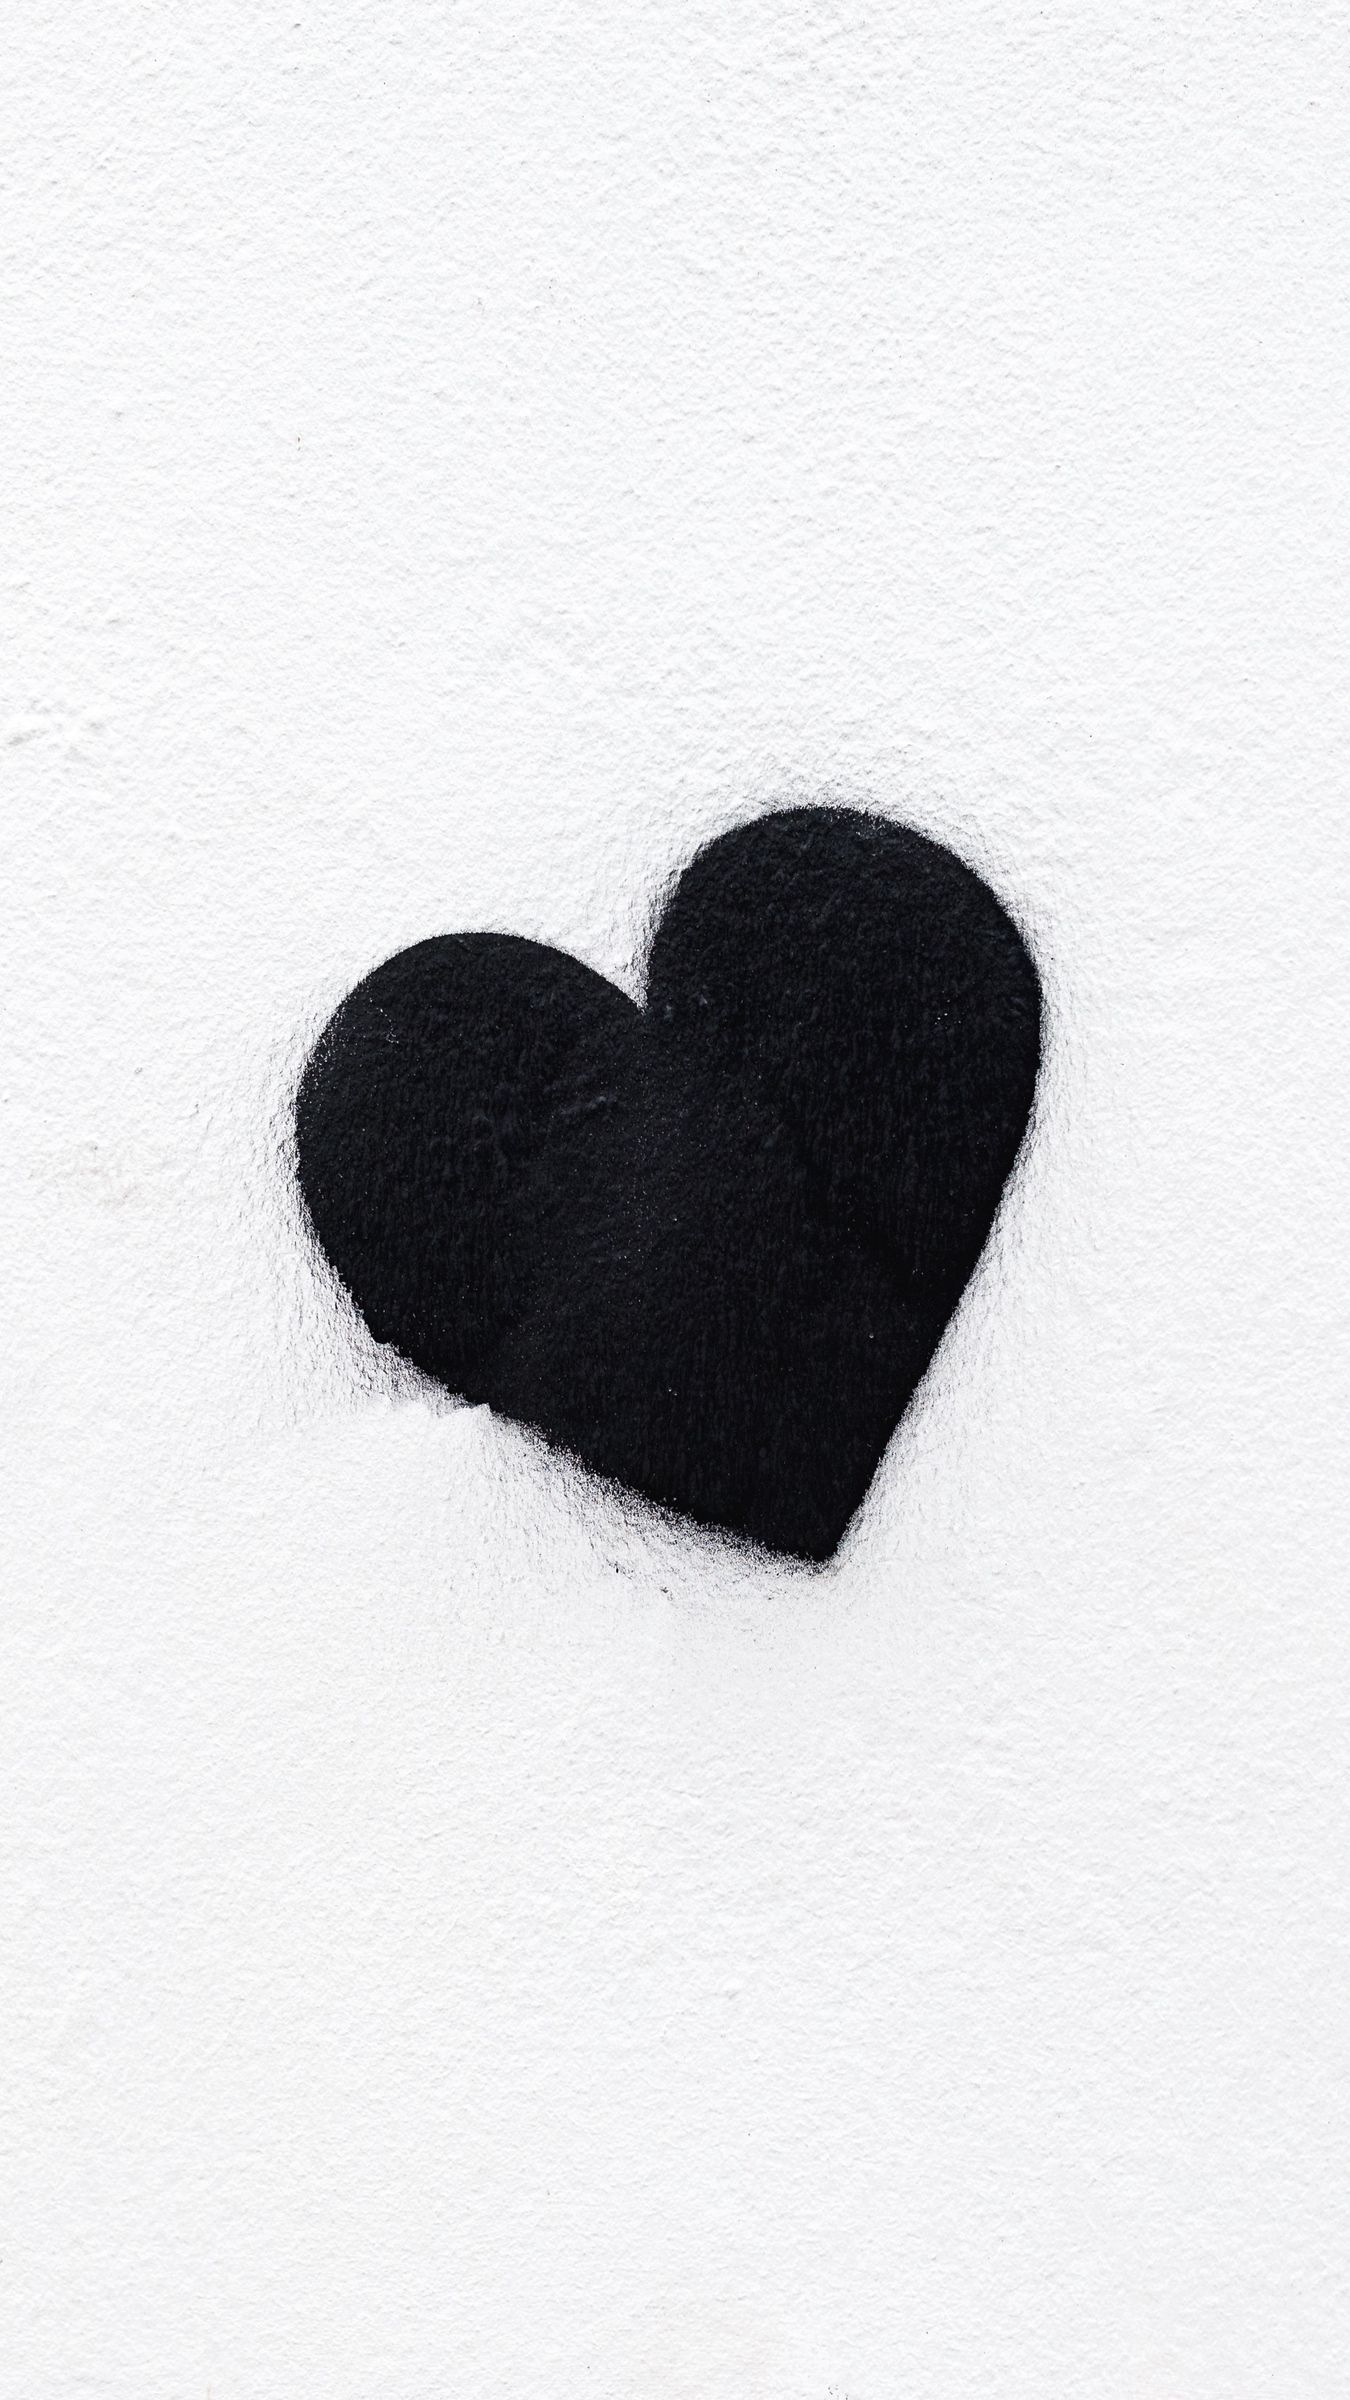 Black And White Heart Wallpapers Top Free Black And White Heart Backgrounds Wallpaperaccess